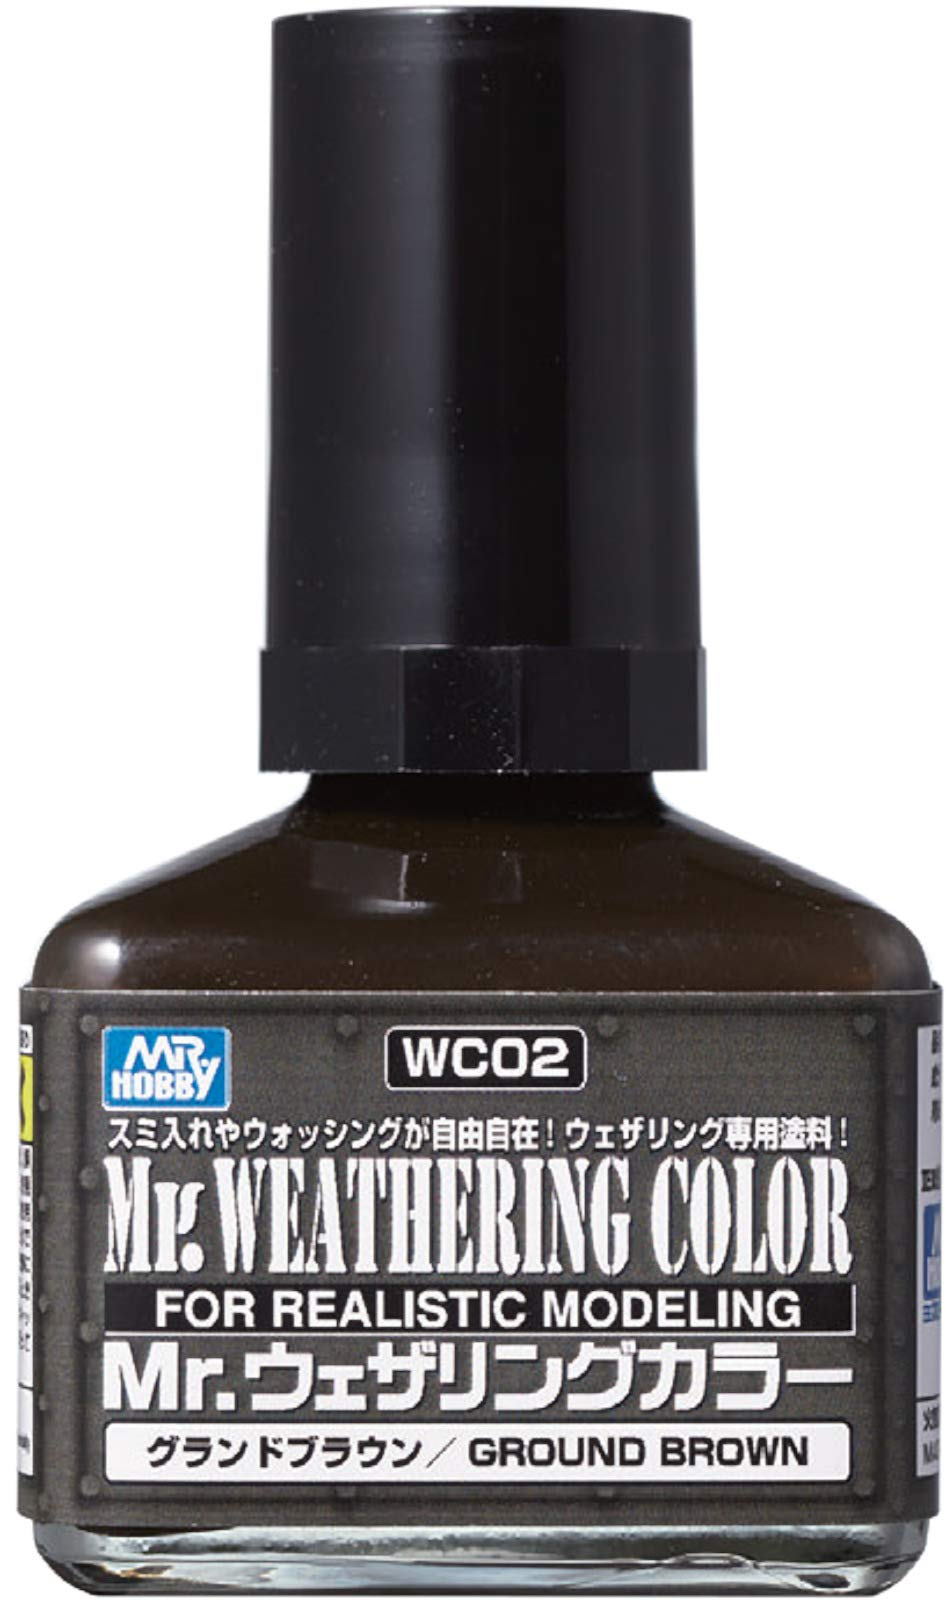 WC02 Ground Brown, GSI, Mr. Weathering Color Paint